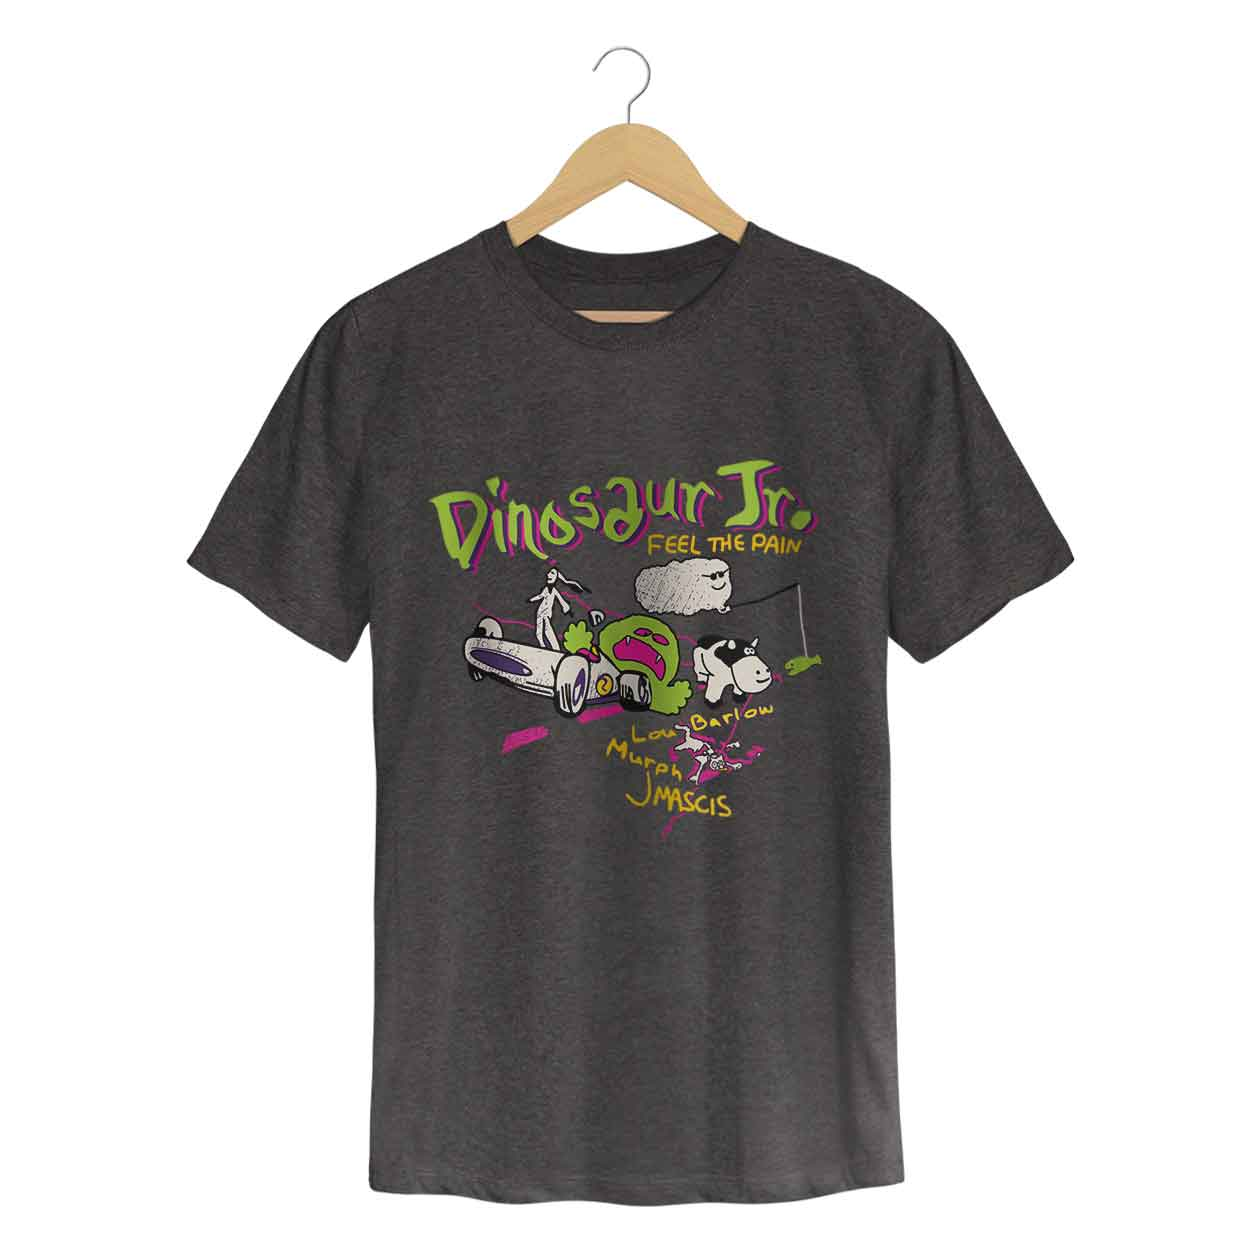 Camiseta - Feel The Pain - Dinosaur Jr. - Masculino